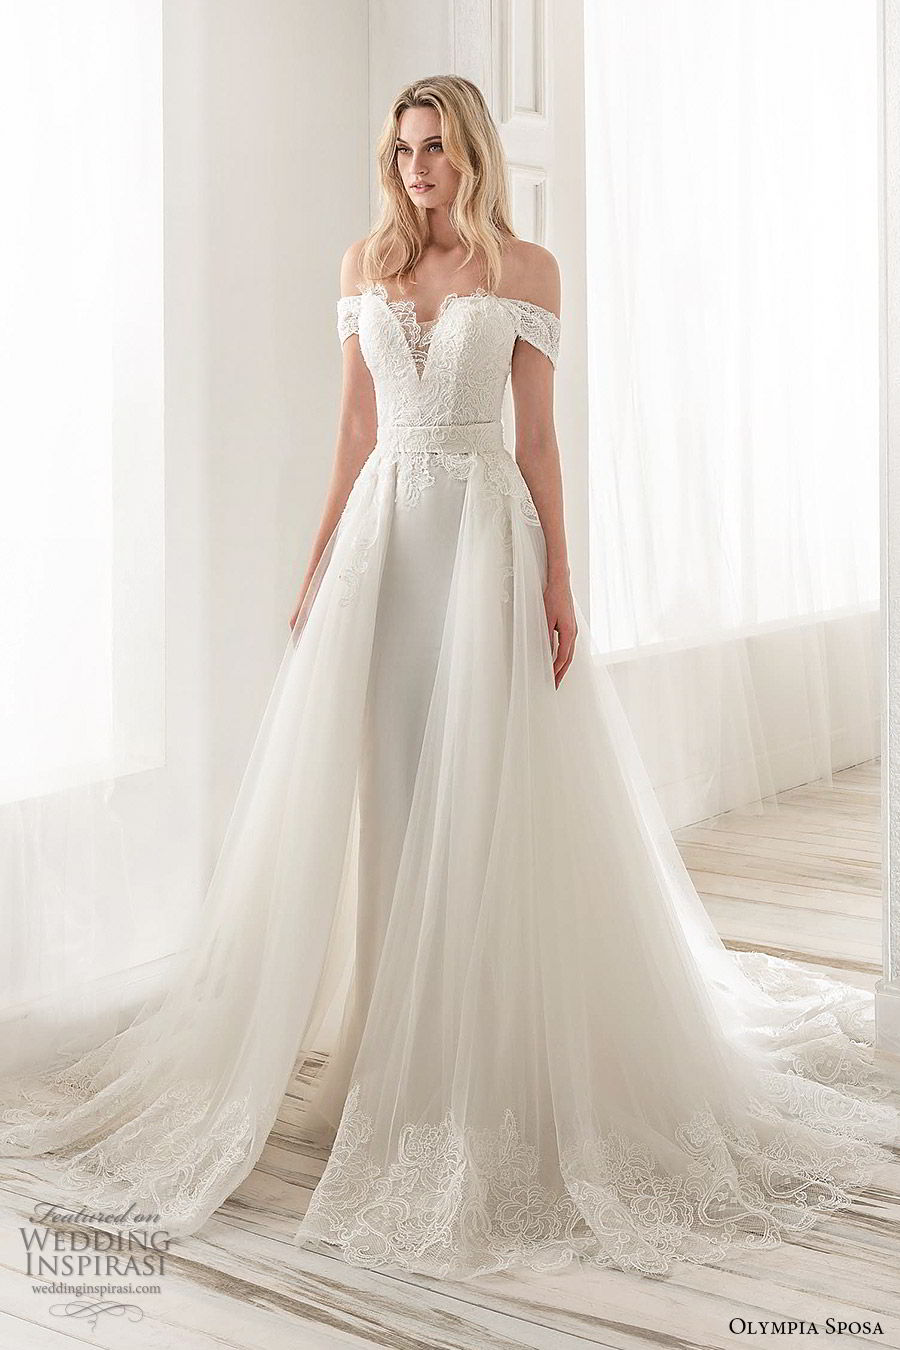 olympia sposa 2020 bridal off shoulder sweetheart embellished bodice sheath wedding dress a line ball gown overskirt (12) modern romantic cathedral train mv